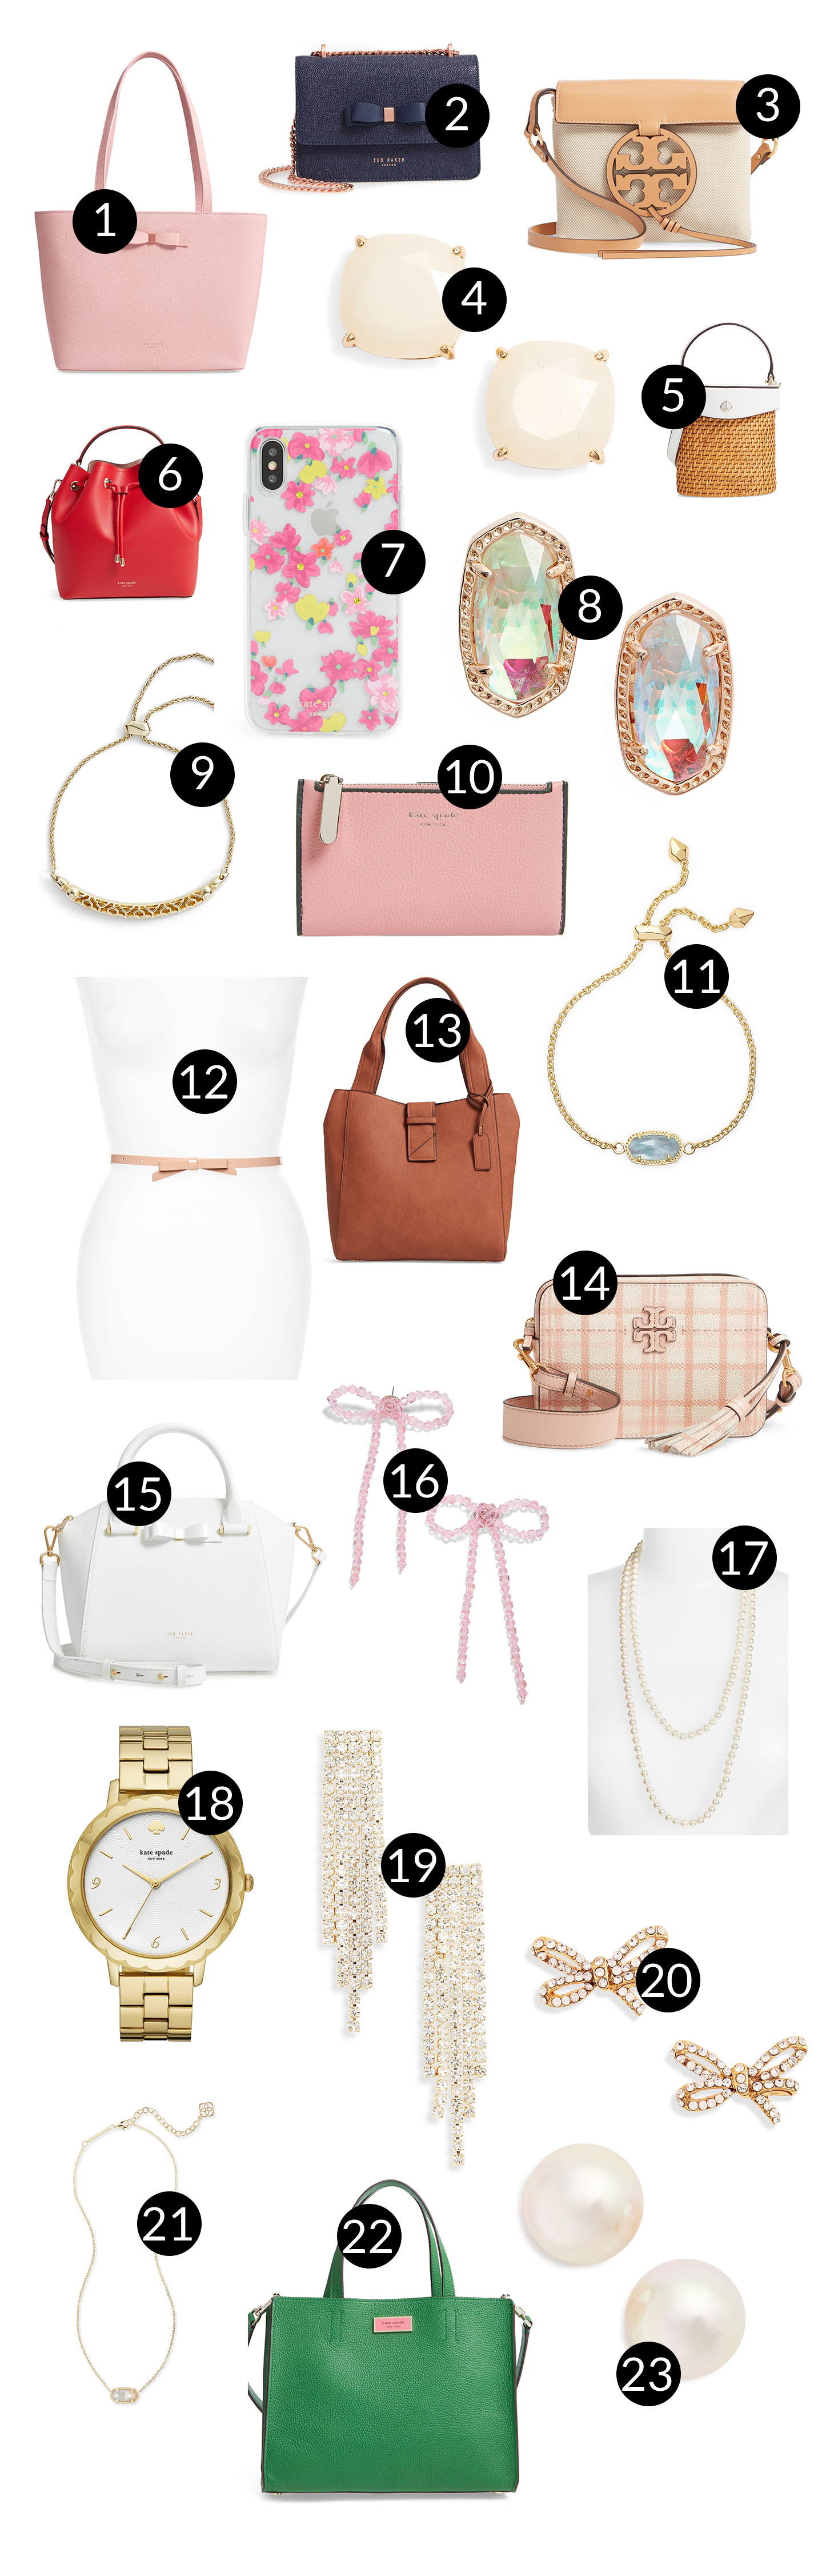 Nordstrom Accessories (Half-Yearly Sale): Insane deals. SO. MANY. MARKDOWNS.